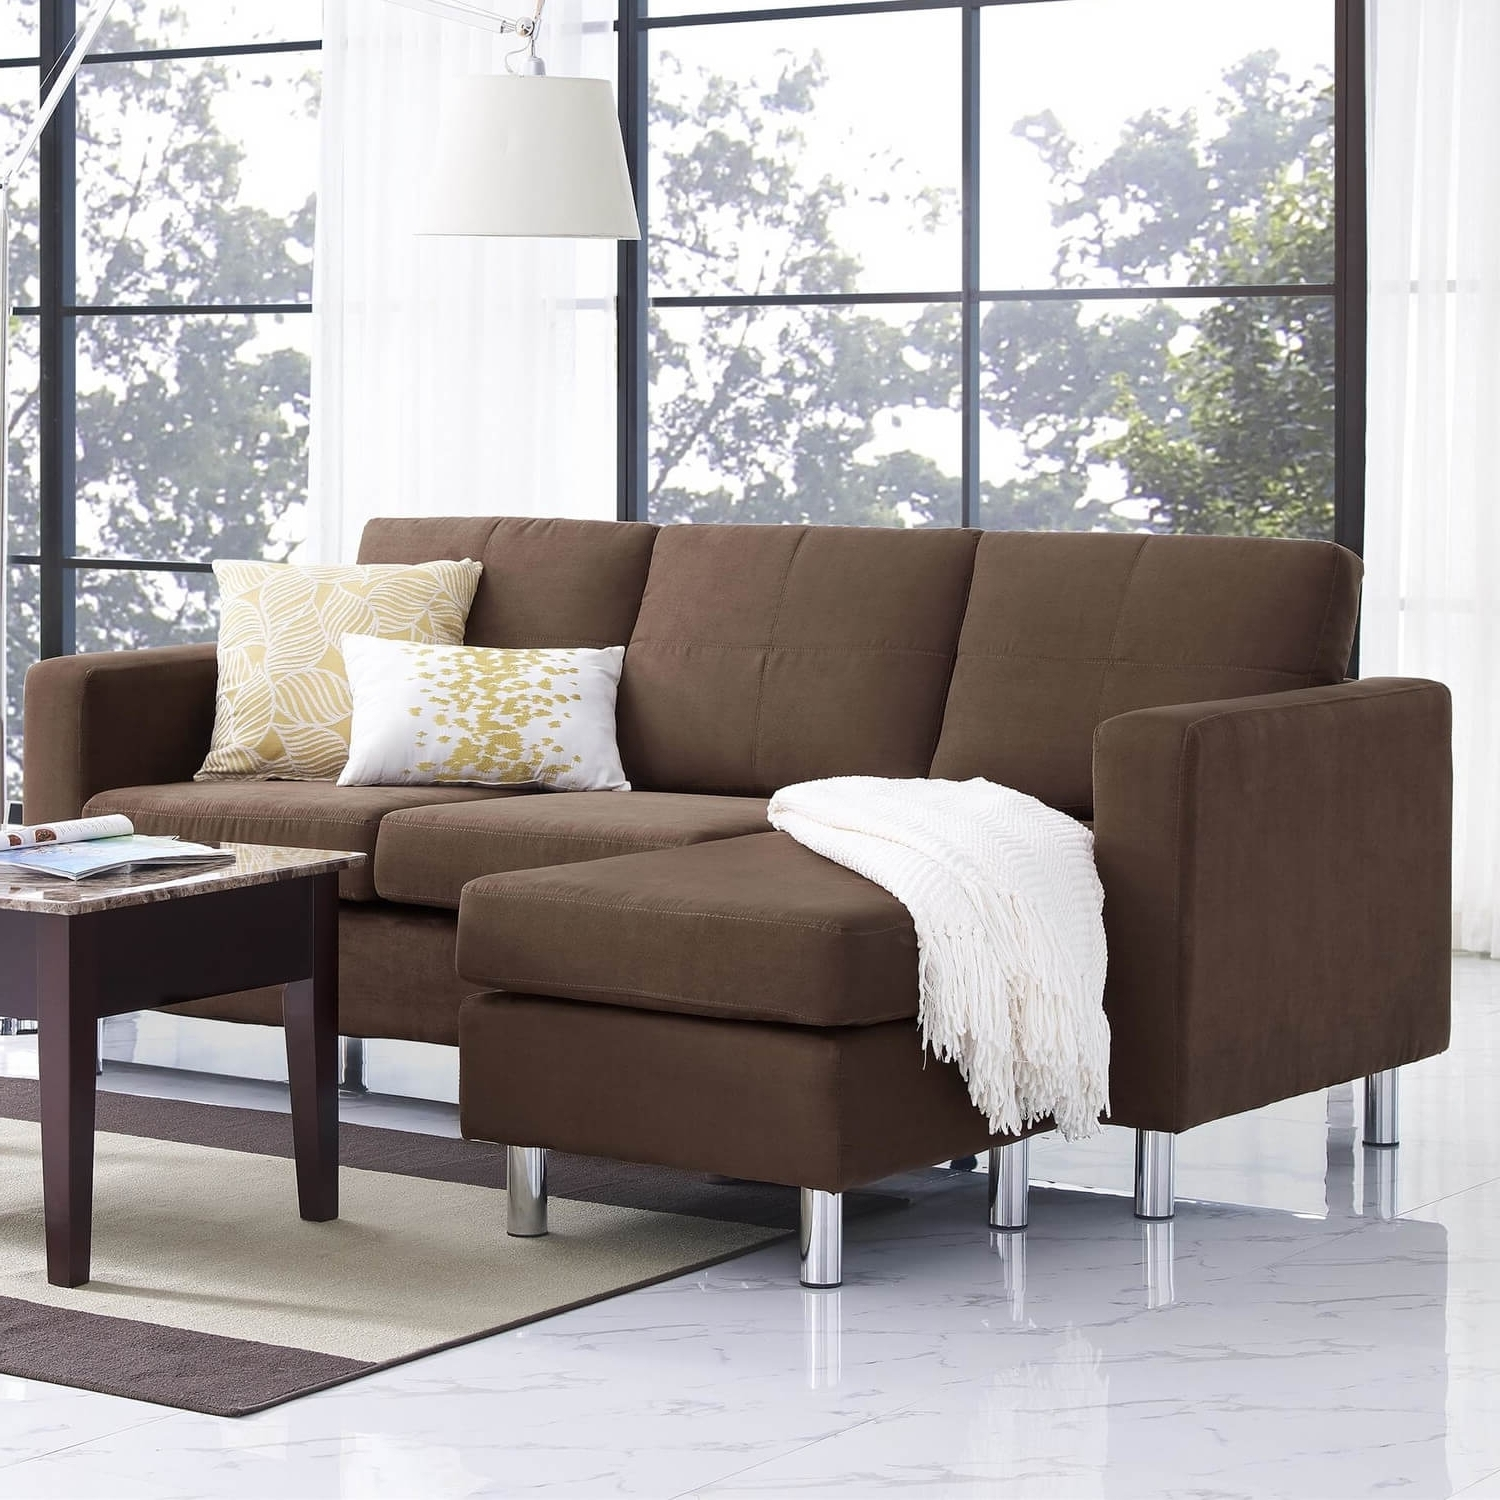 Most Current Sectional Sofa Under 500 Dollars • Sectional Sofa For Sectional Sofas Under  (View 6 of 20)